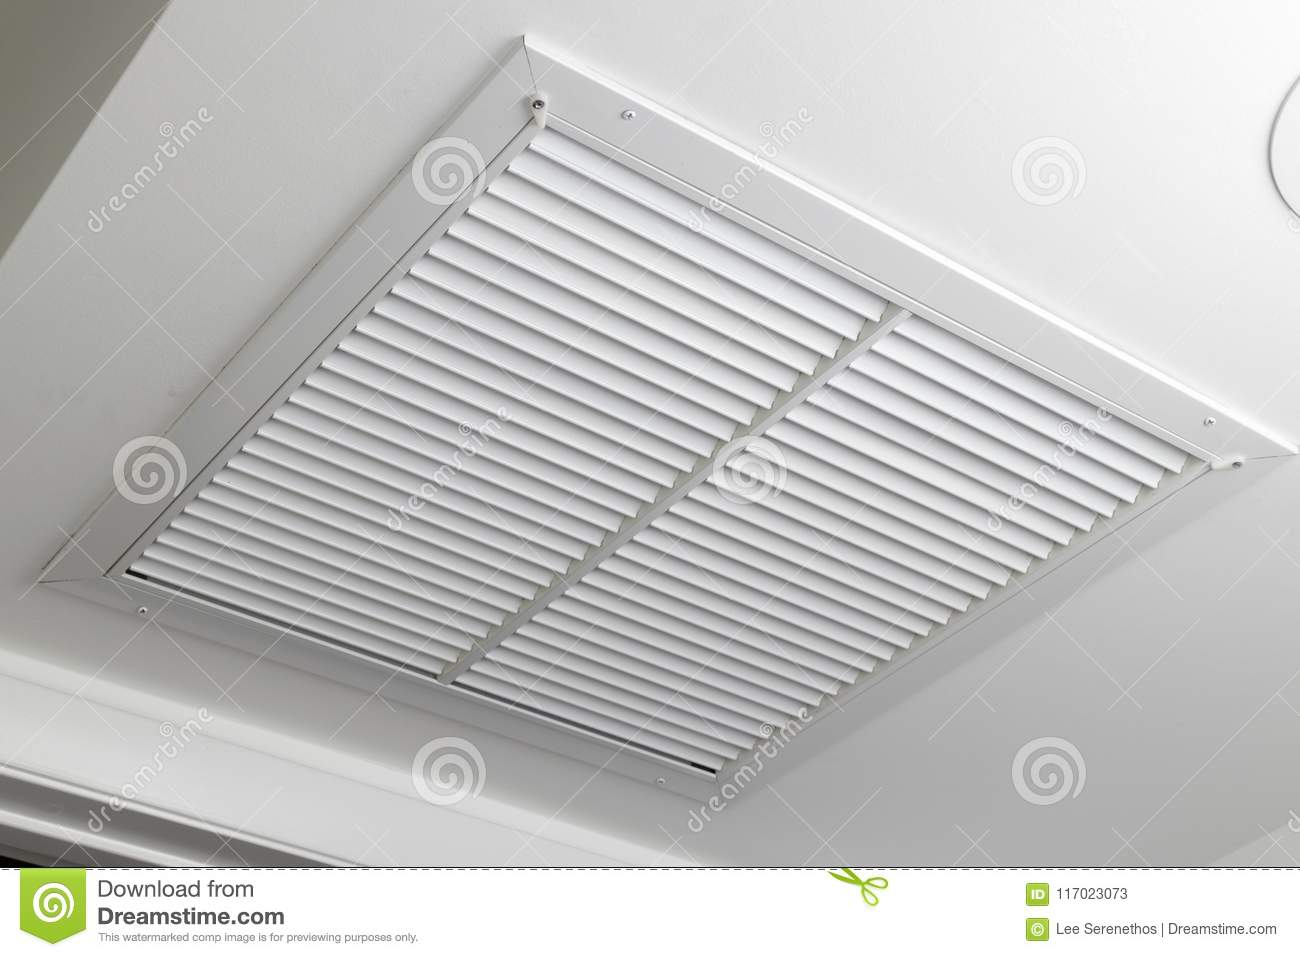 White Ceiling Air Filter Vent Grid Stock Image - Image of